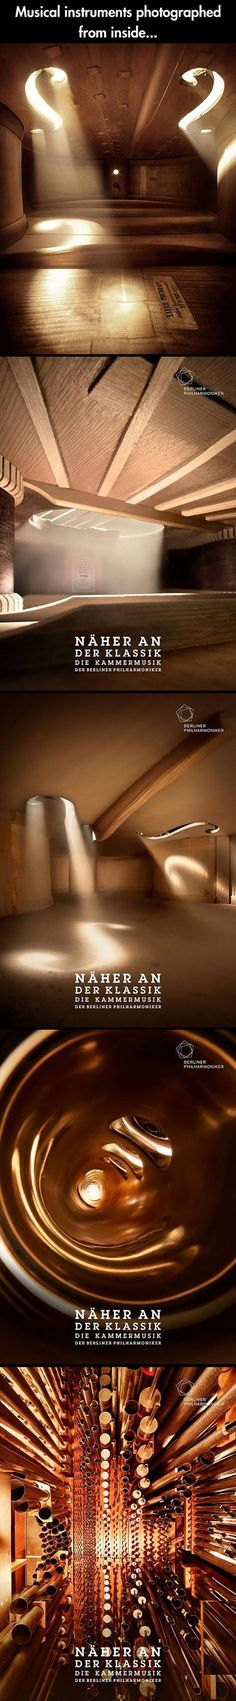 Musical instruments photographet from inside... just like big rooms that together make a beautiful house!!!